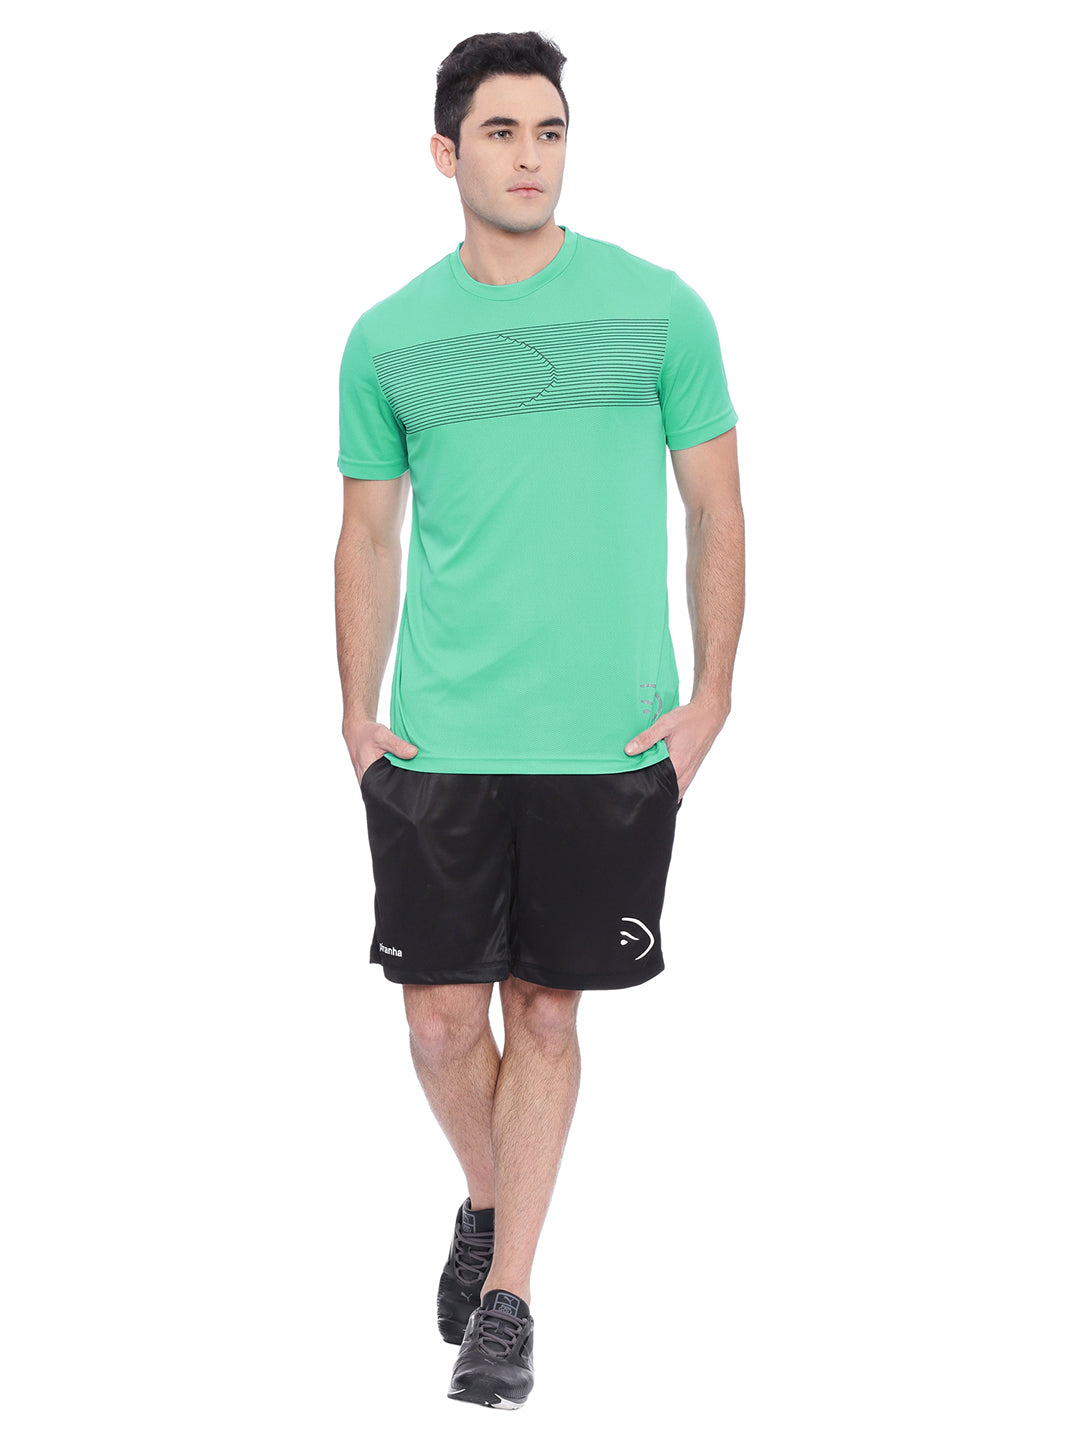 Piranha Men Aqua Green Sports T-shirt